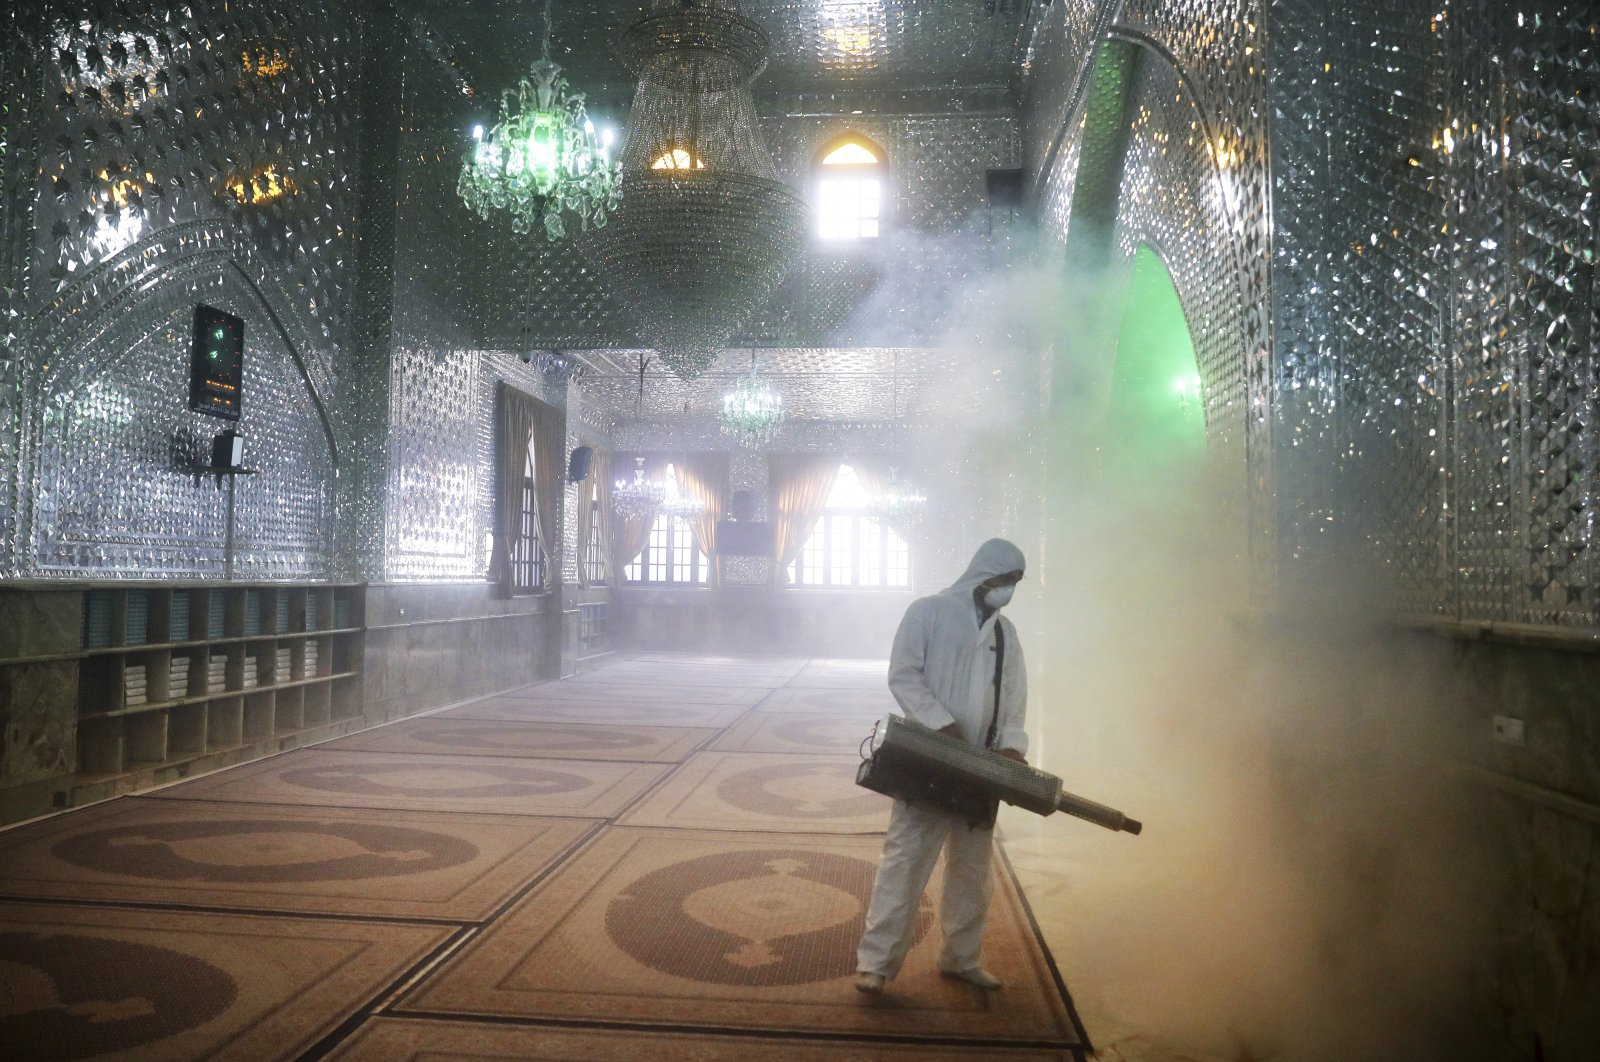 A firefighter disinfects the shrine of Saint Saleh to help prevent the spread of the new coronavirus in northern Tehran, Iran, Friday, March, 6, 2020. (AP Photo)